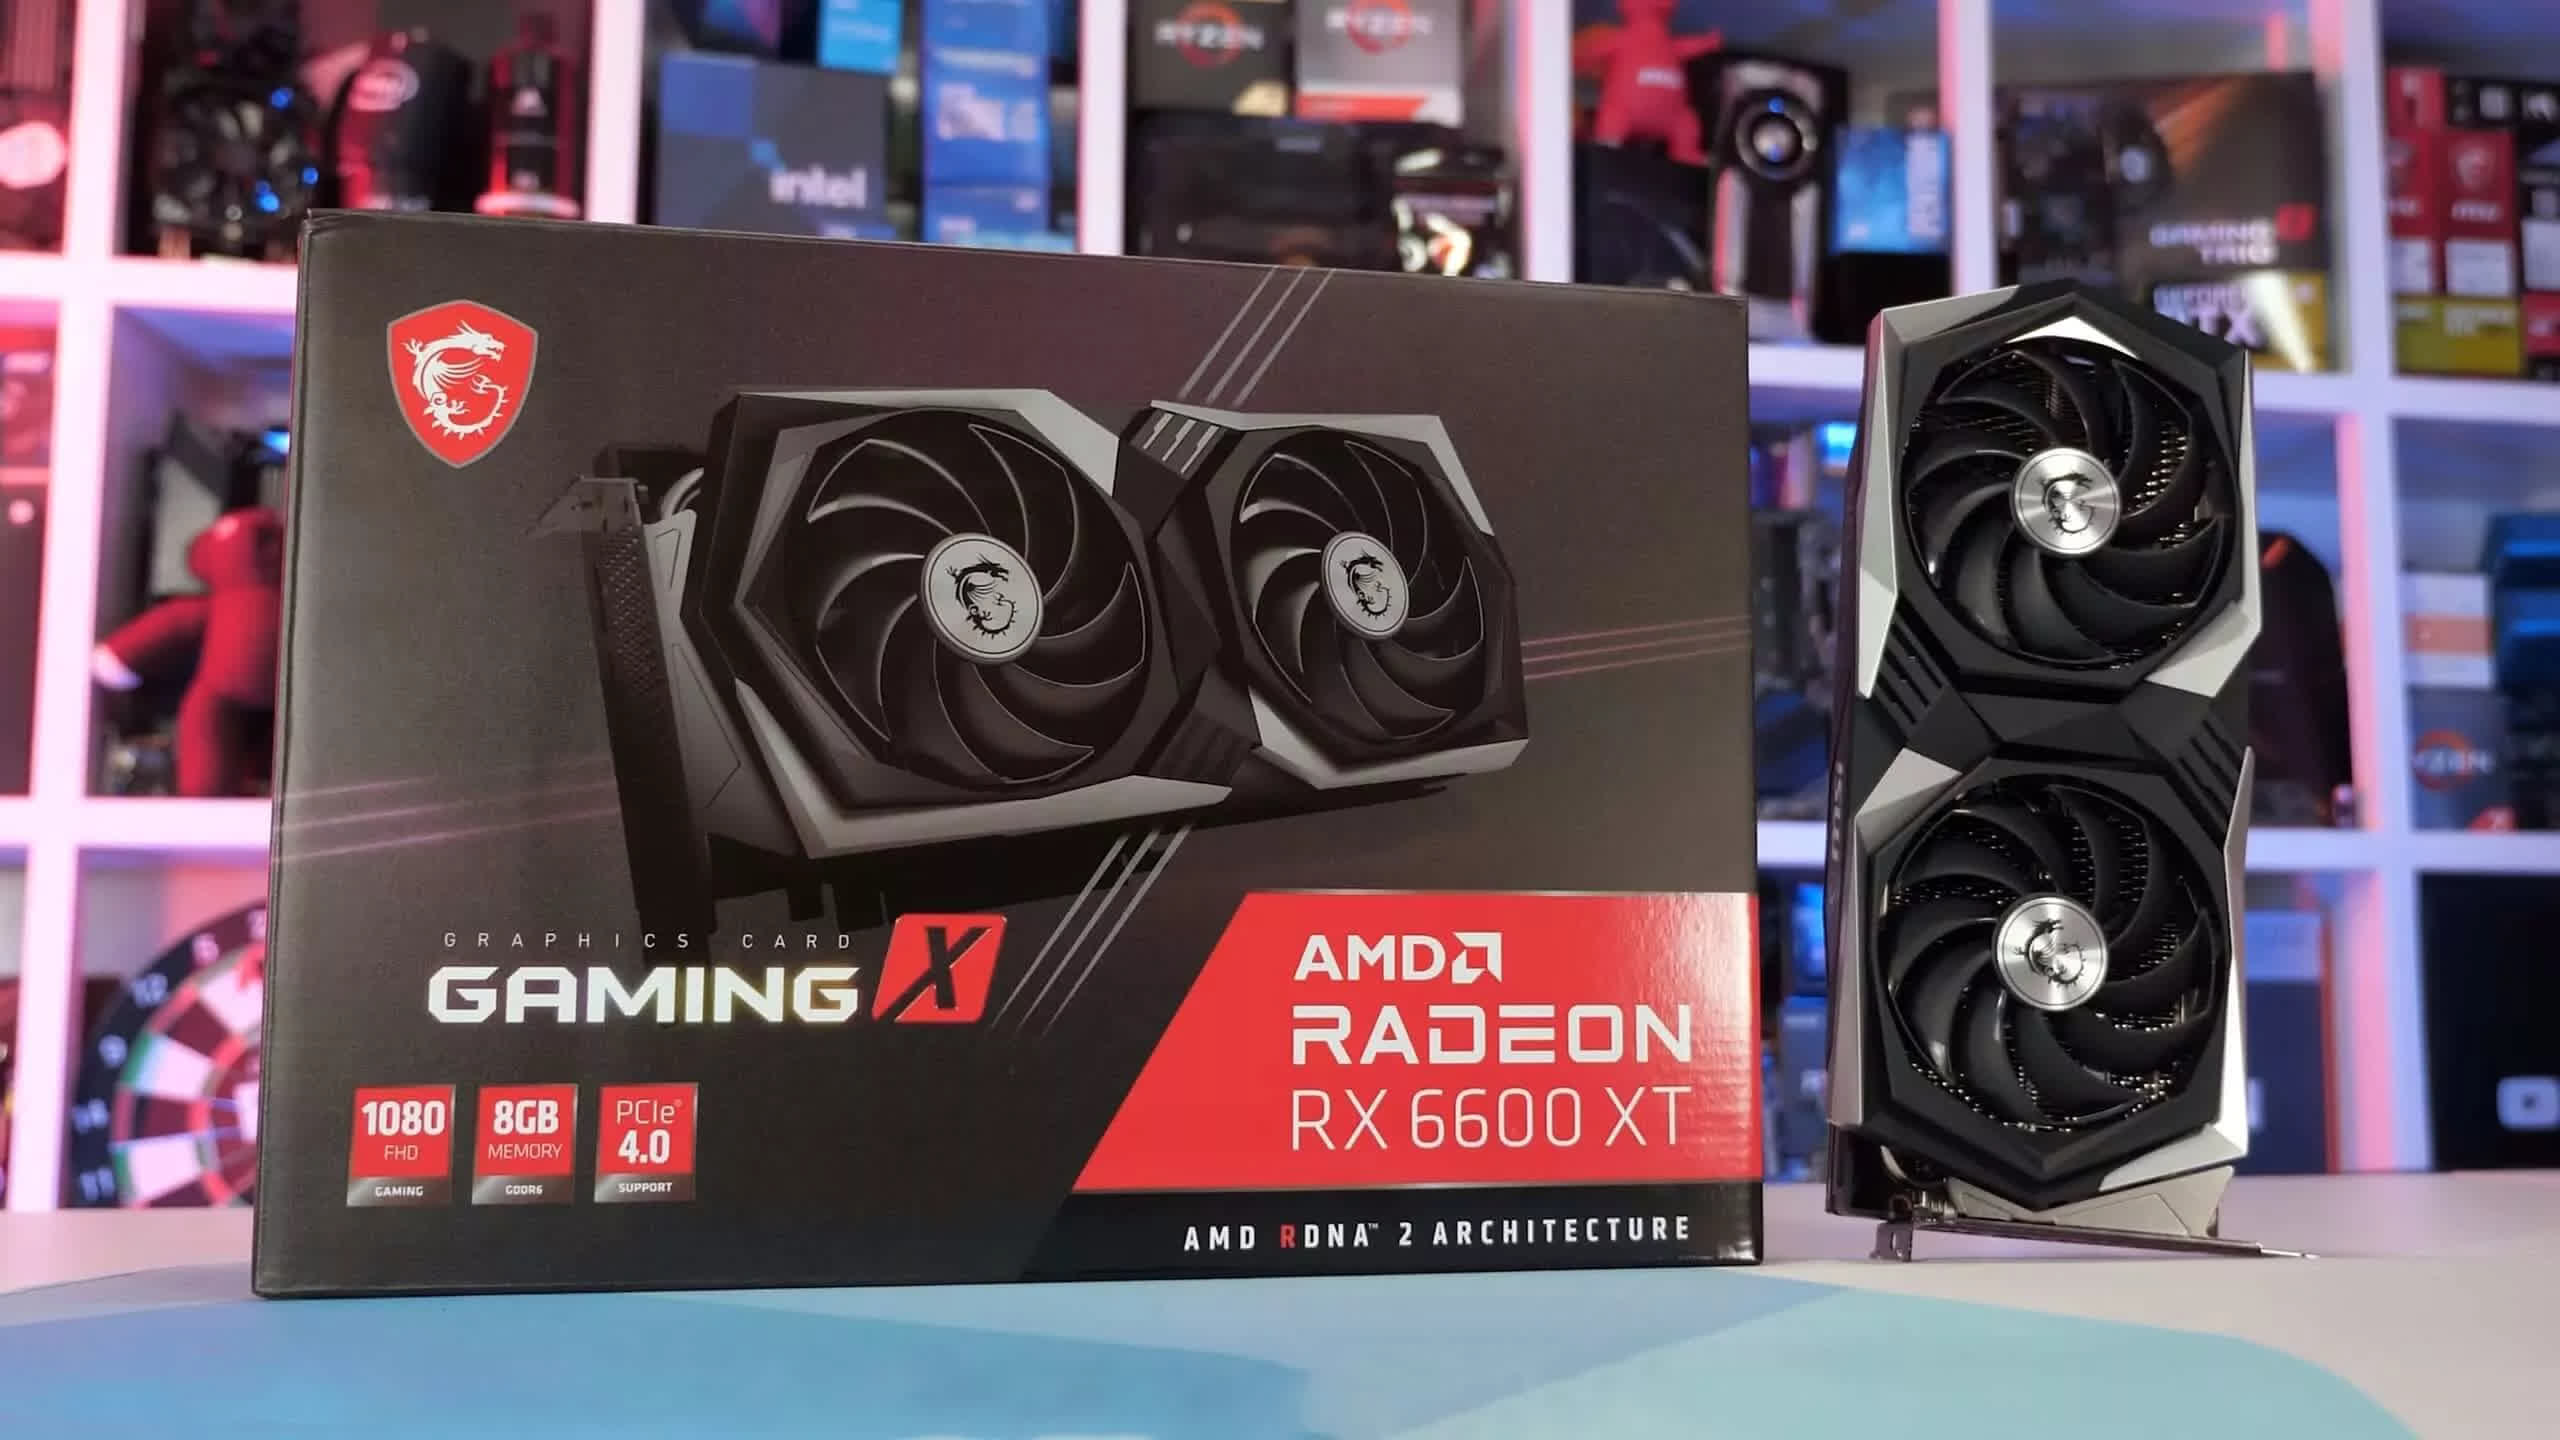 AMD denies prioritizing mining graphics cards over gaming